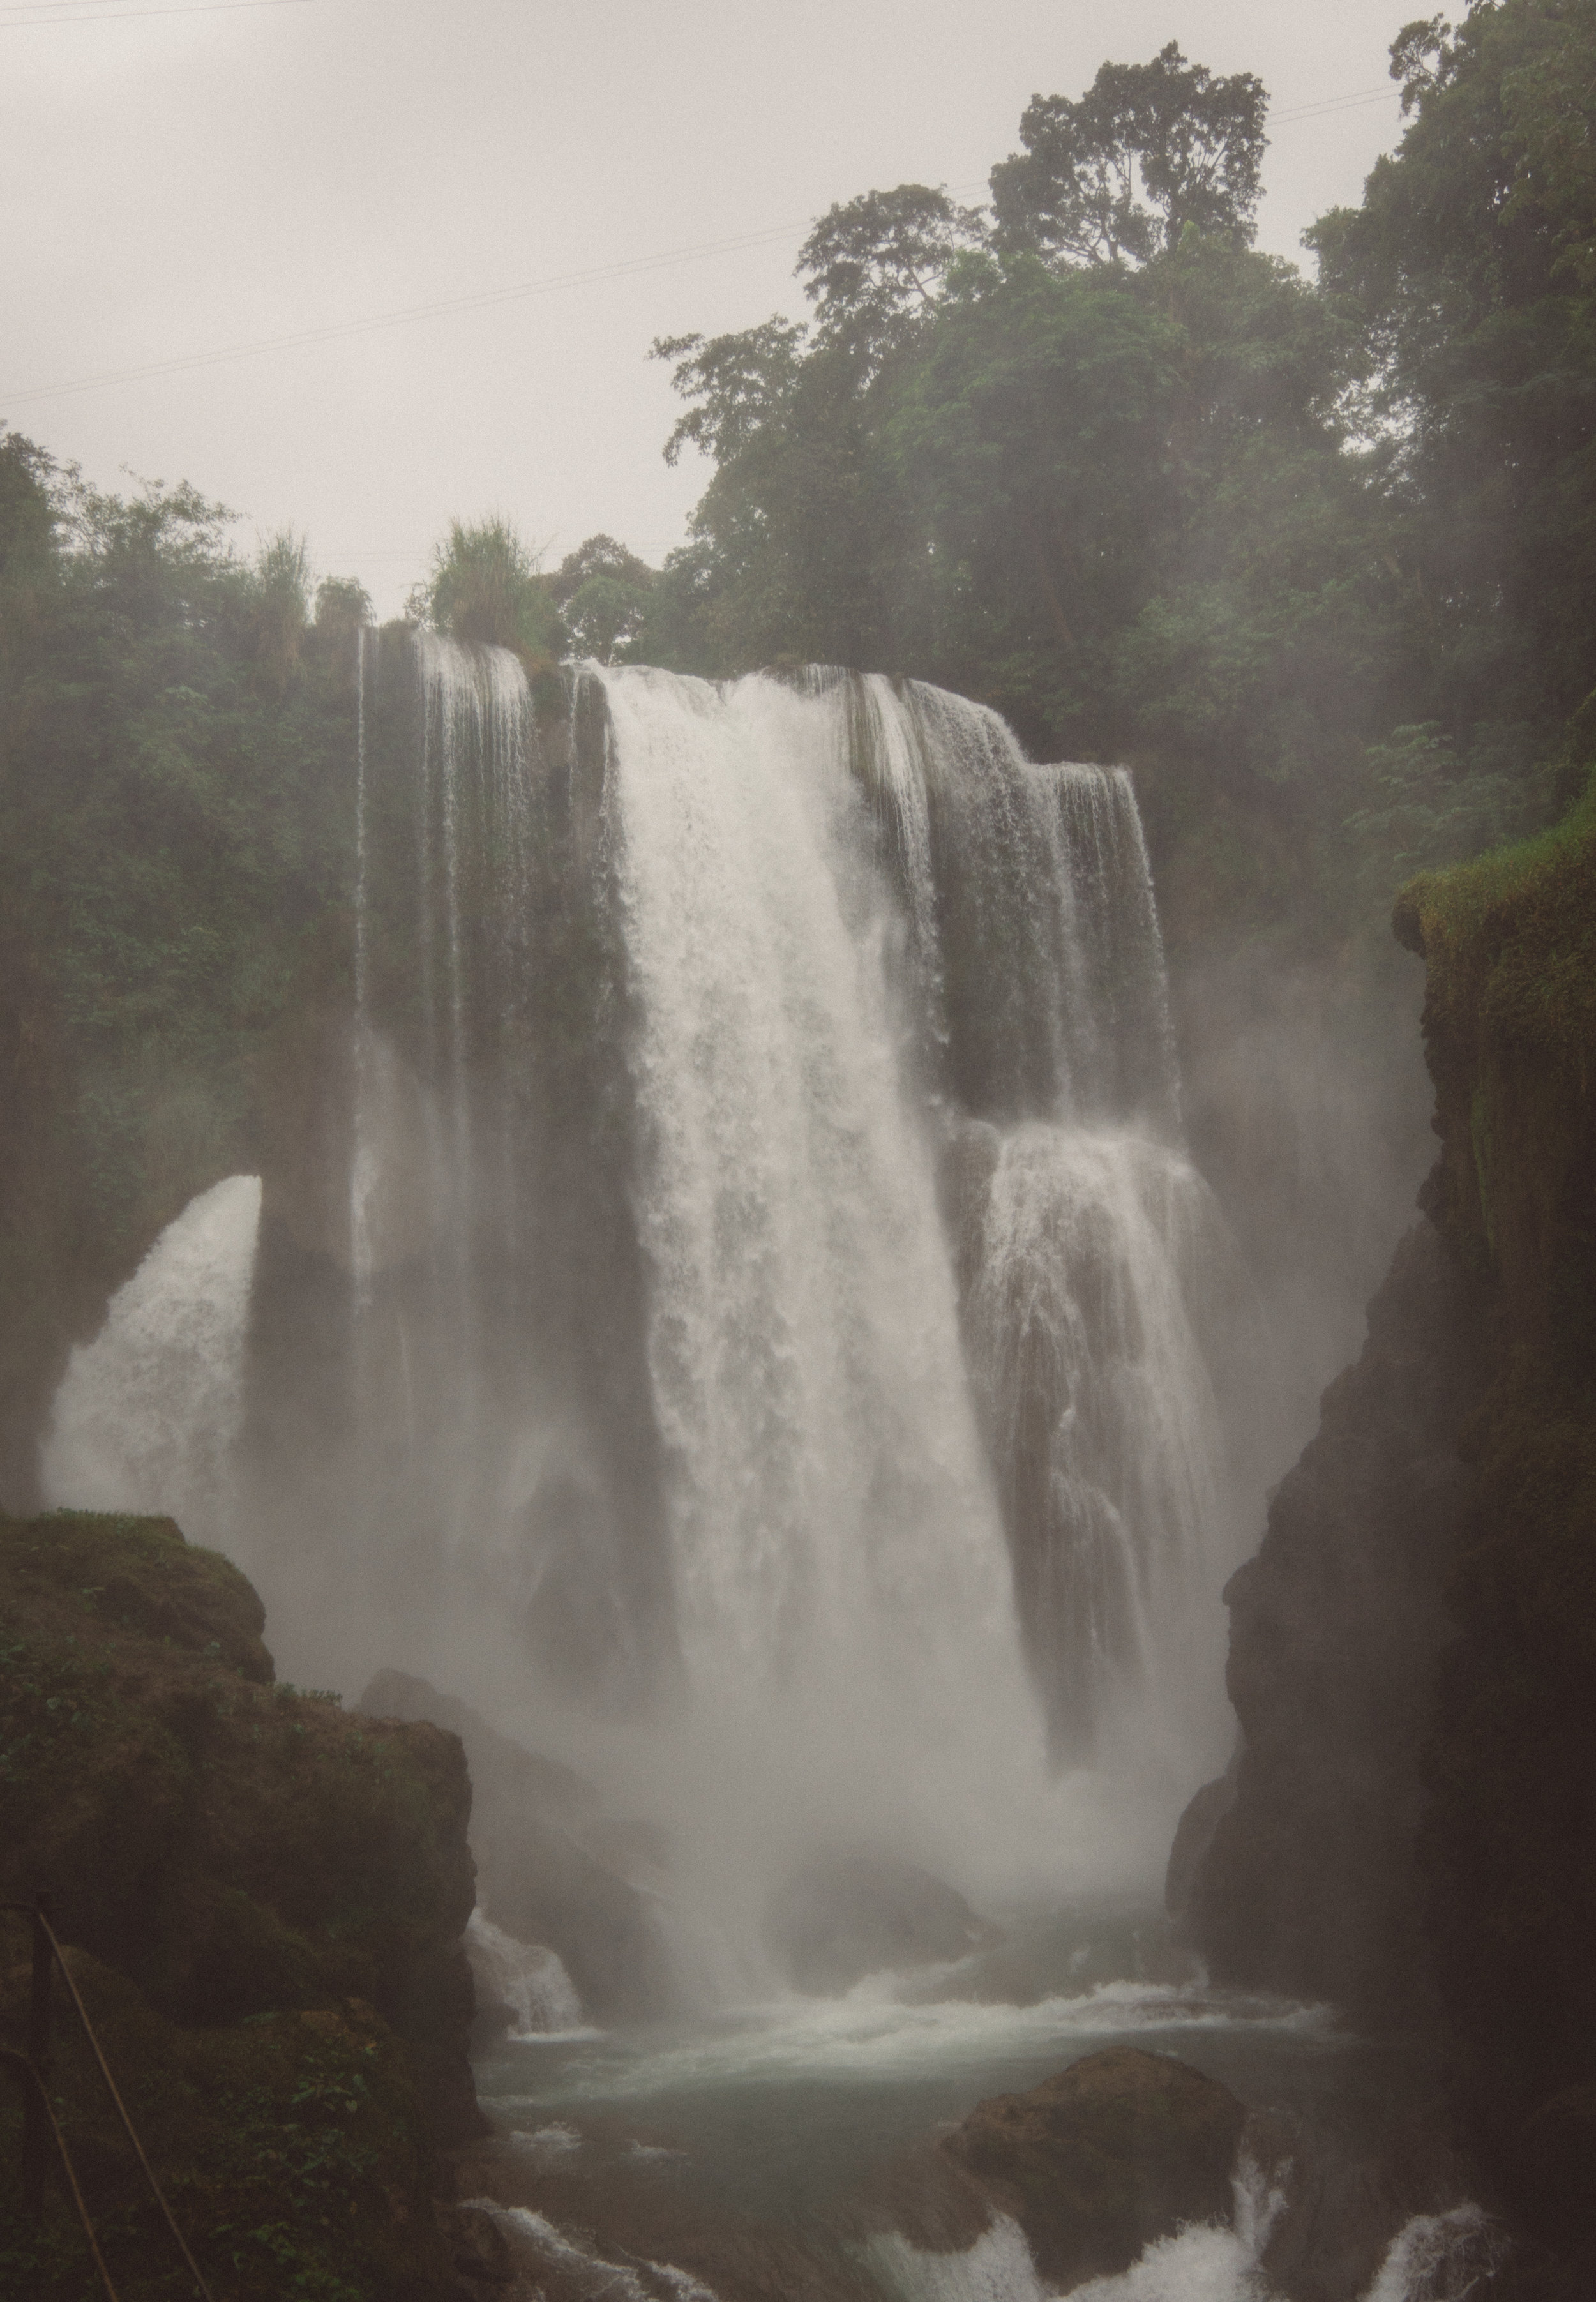 I tried to capture the falls from below, but the amount of spray was incredible. We were soaked within seconds.